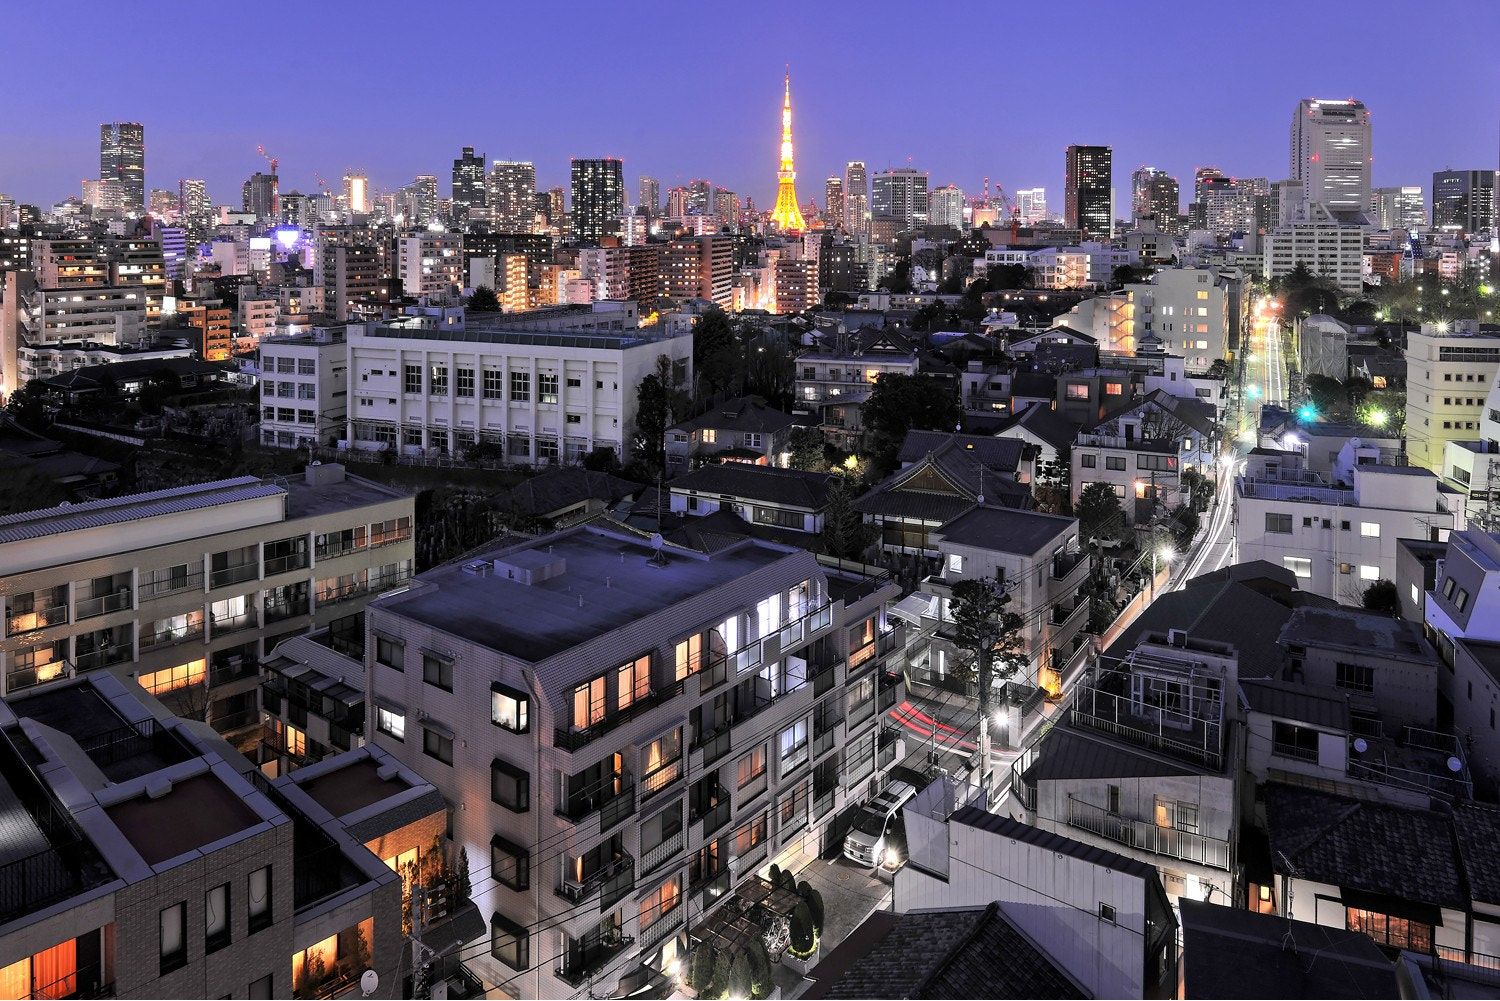 Photograph Tokyo nightfall by Laurent Thery on 500px